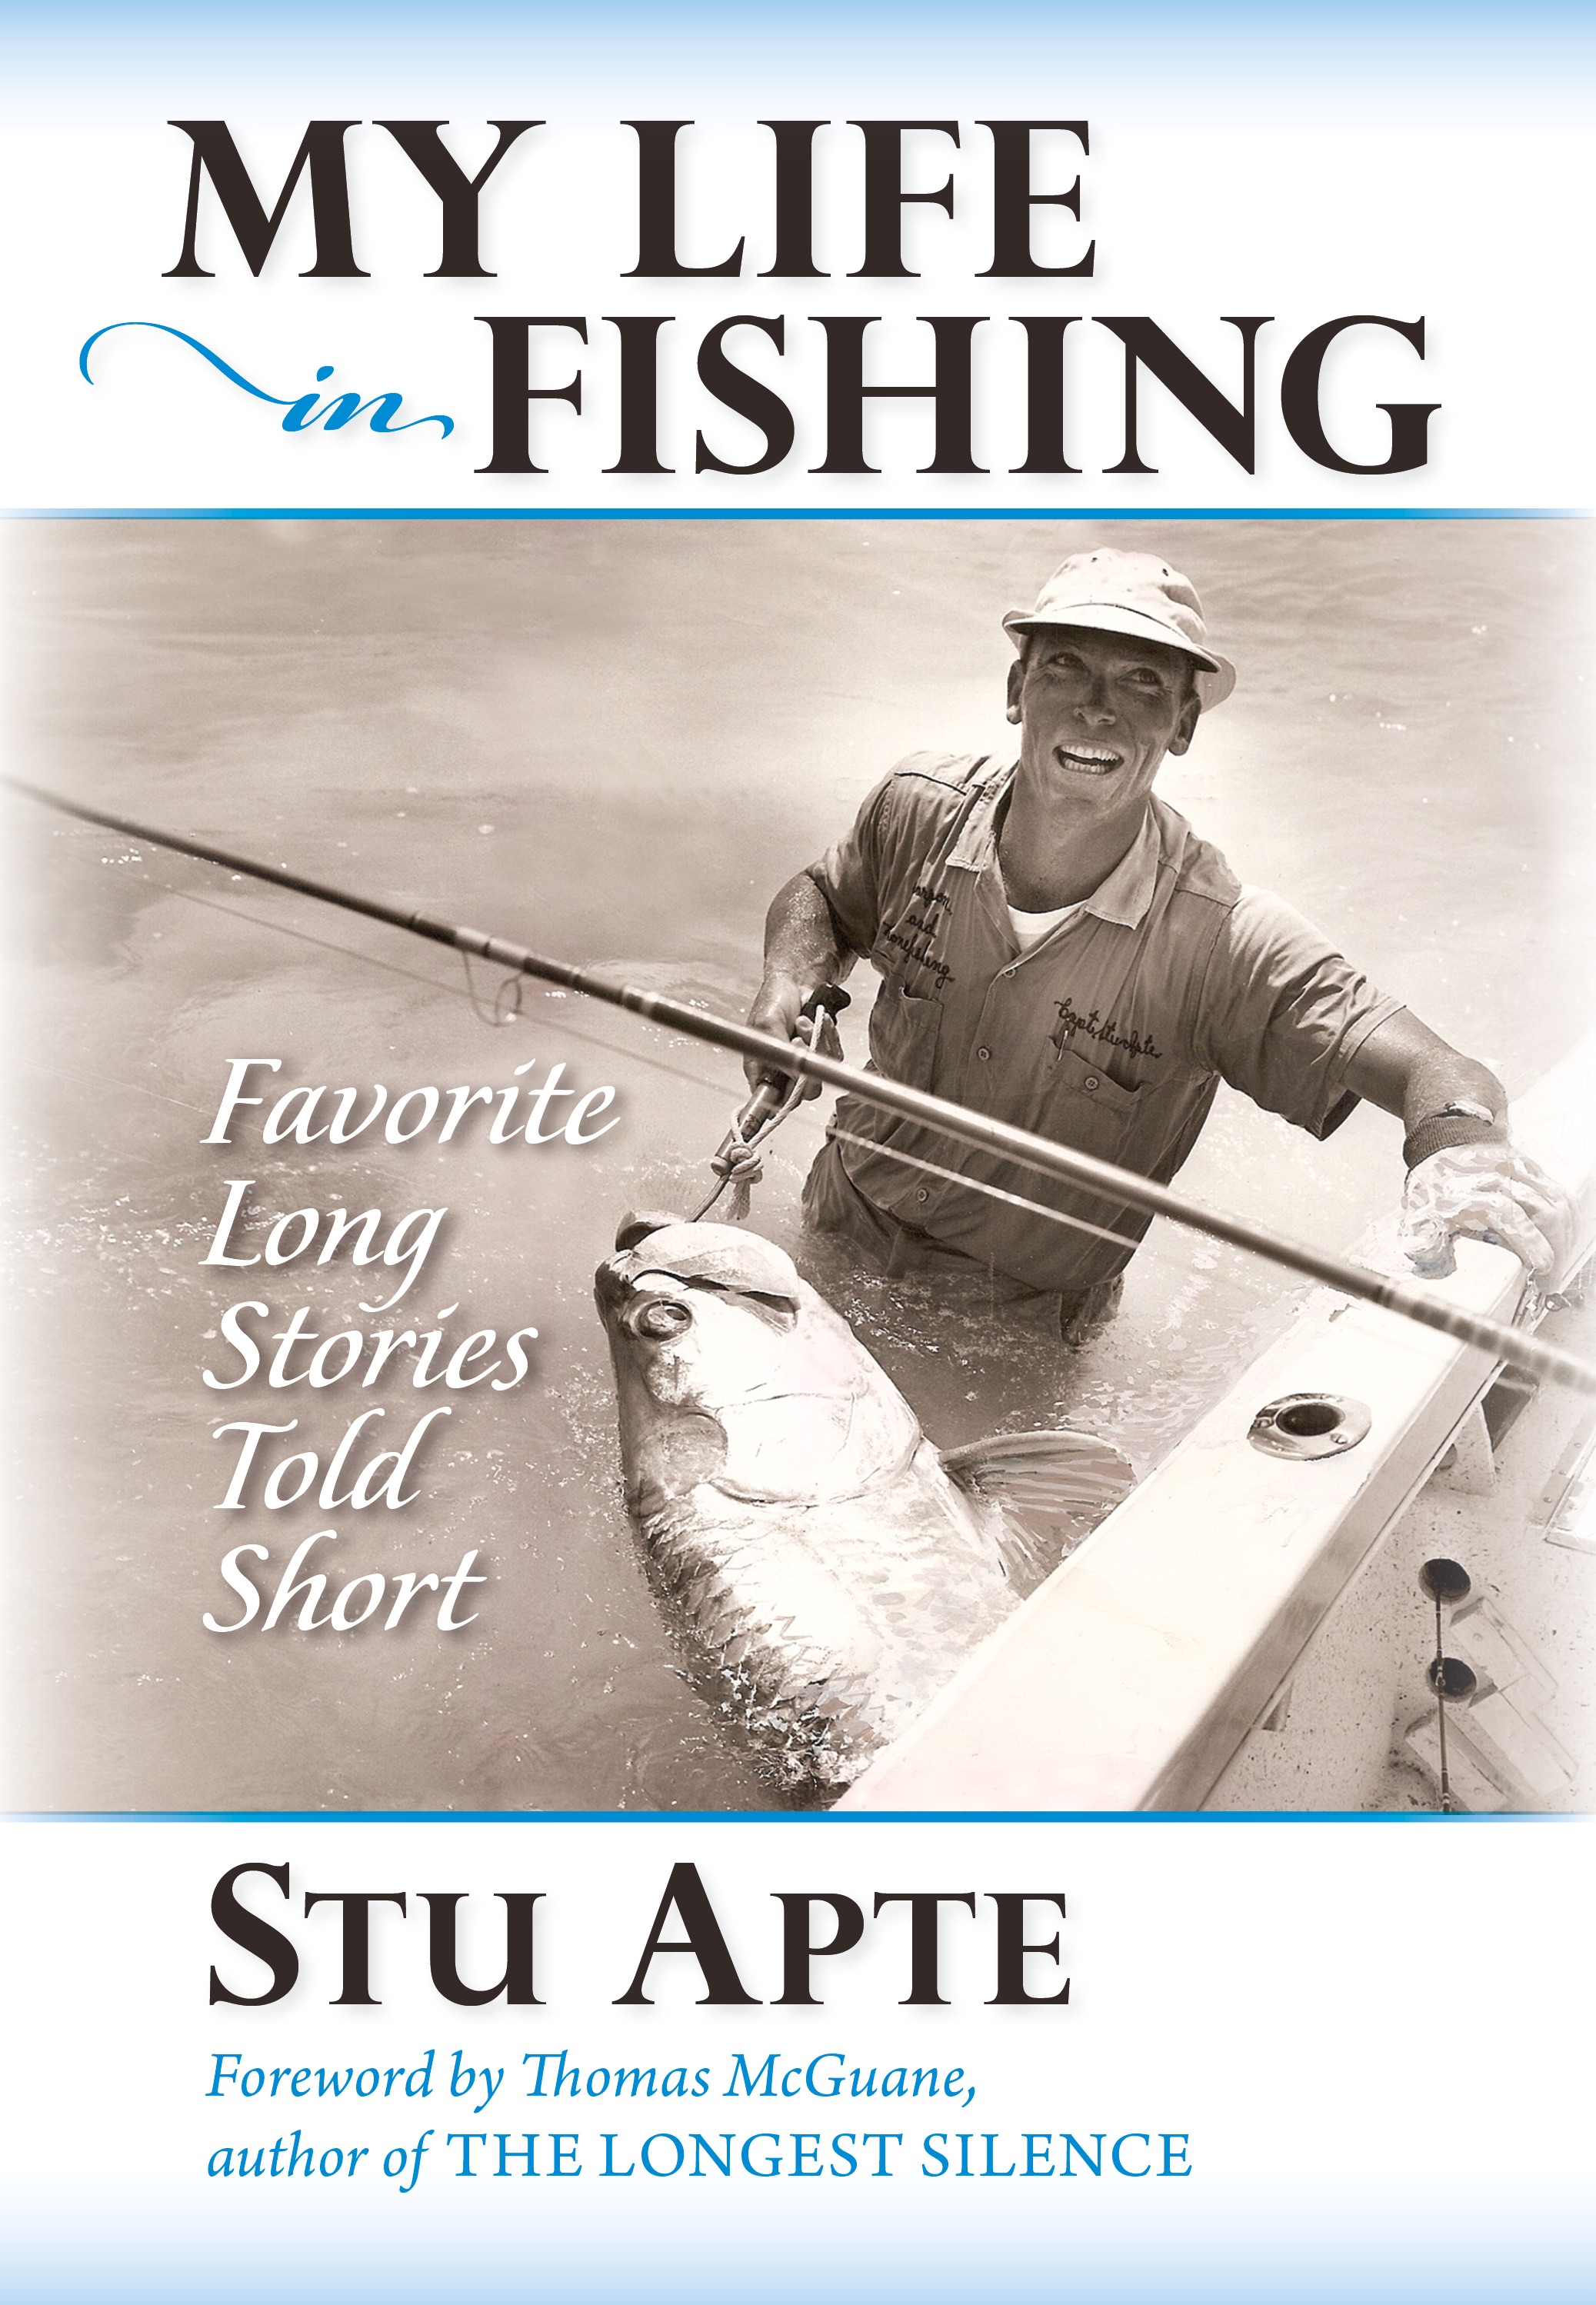 a personal story about fishing You need a fishing license if you are 16 years and older and fishing for: freshwater fish species by angling, spearing, hooking, longbow, and tip-ups frog species by spearing, catching with the hands or by use of a club or hook.